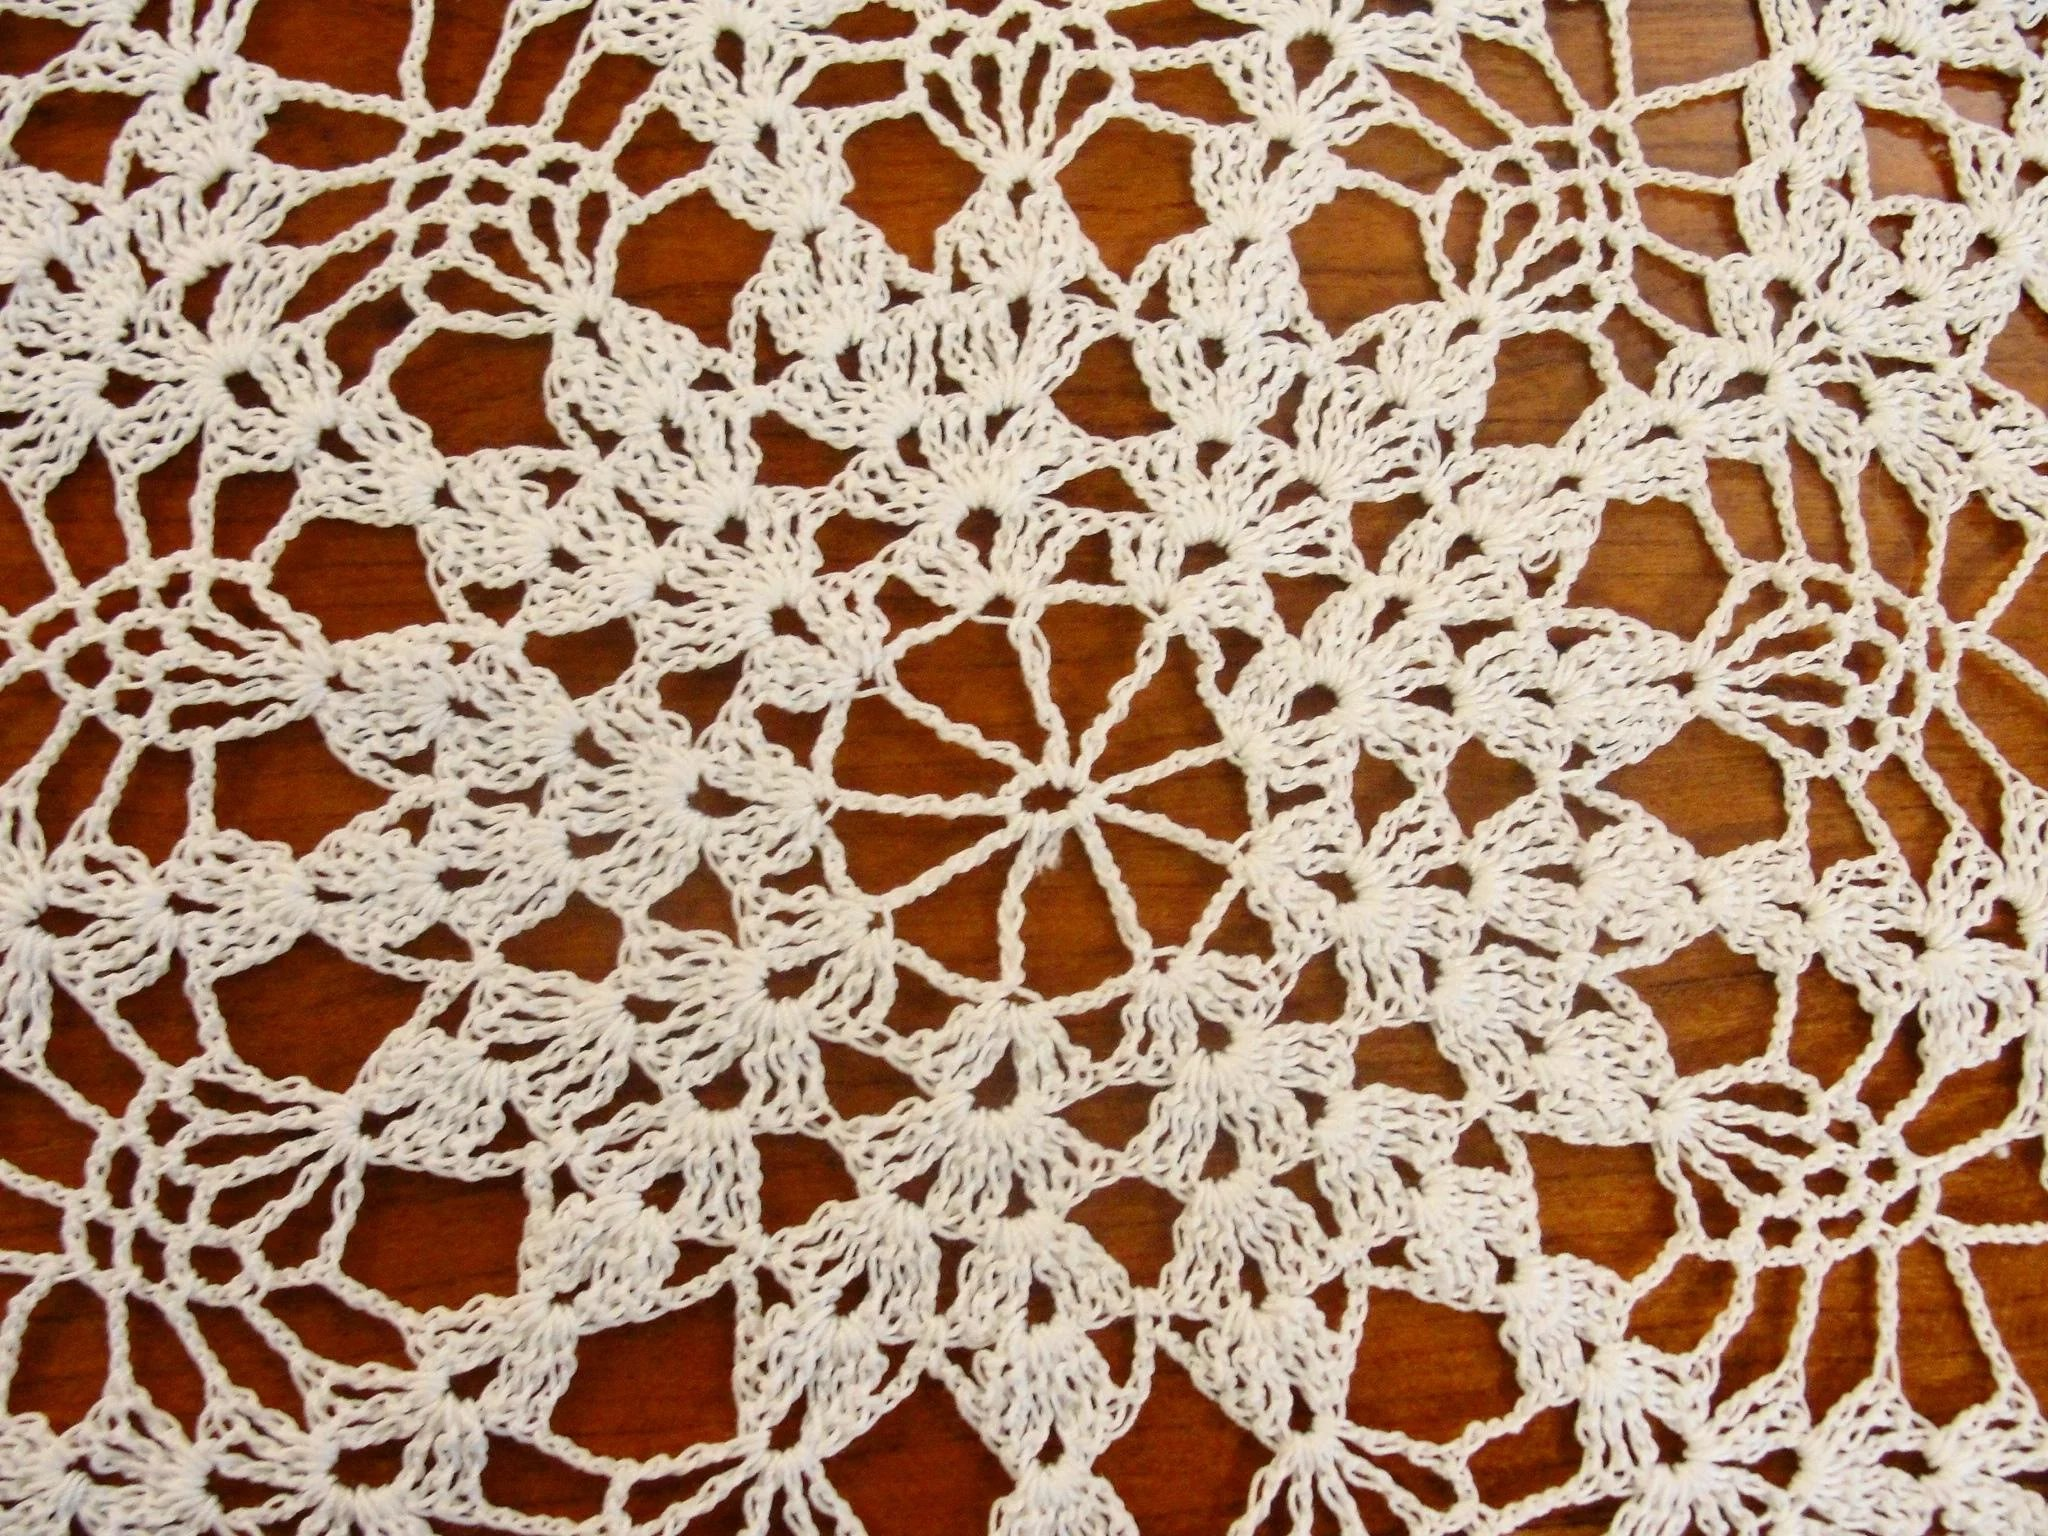 Large Vintage Hand Crochet Round Pineapple Doily SOLD | Ruby Lane